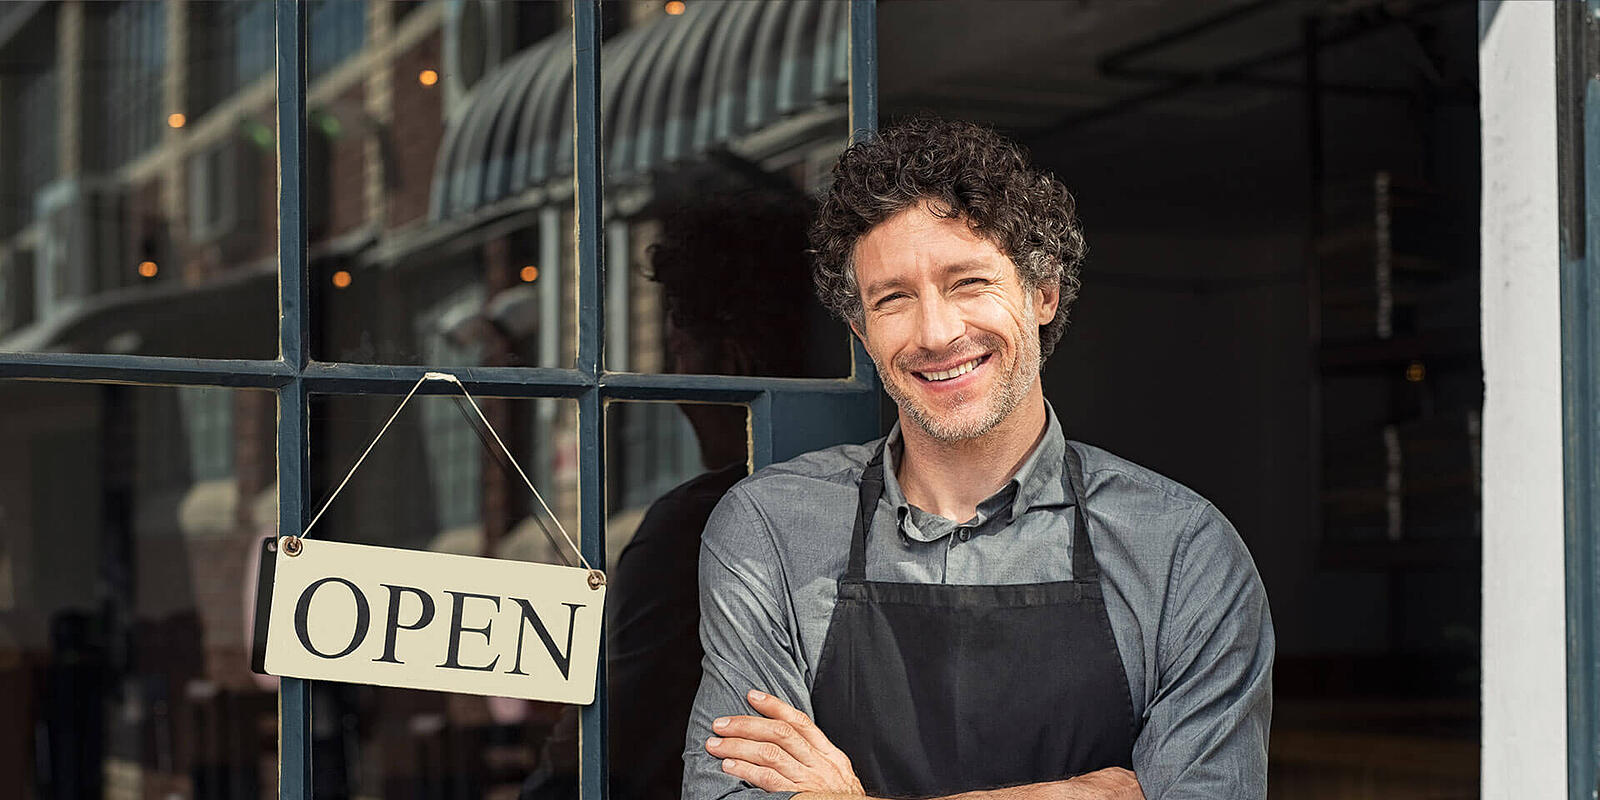 Minimize errors in your restaurant with the right management system